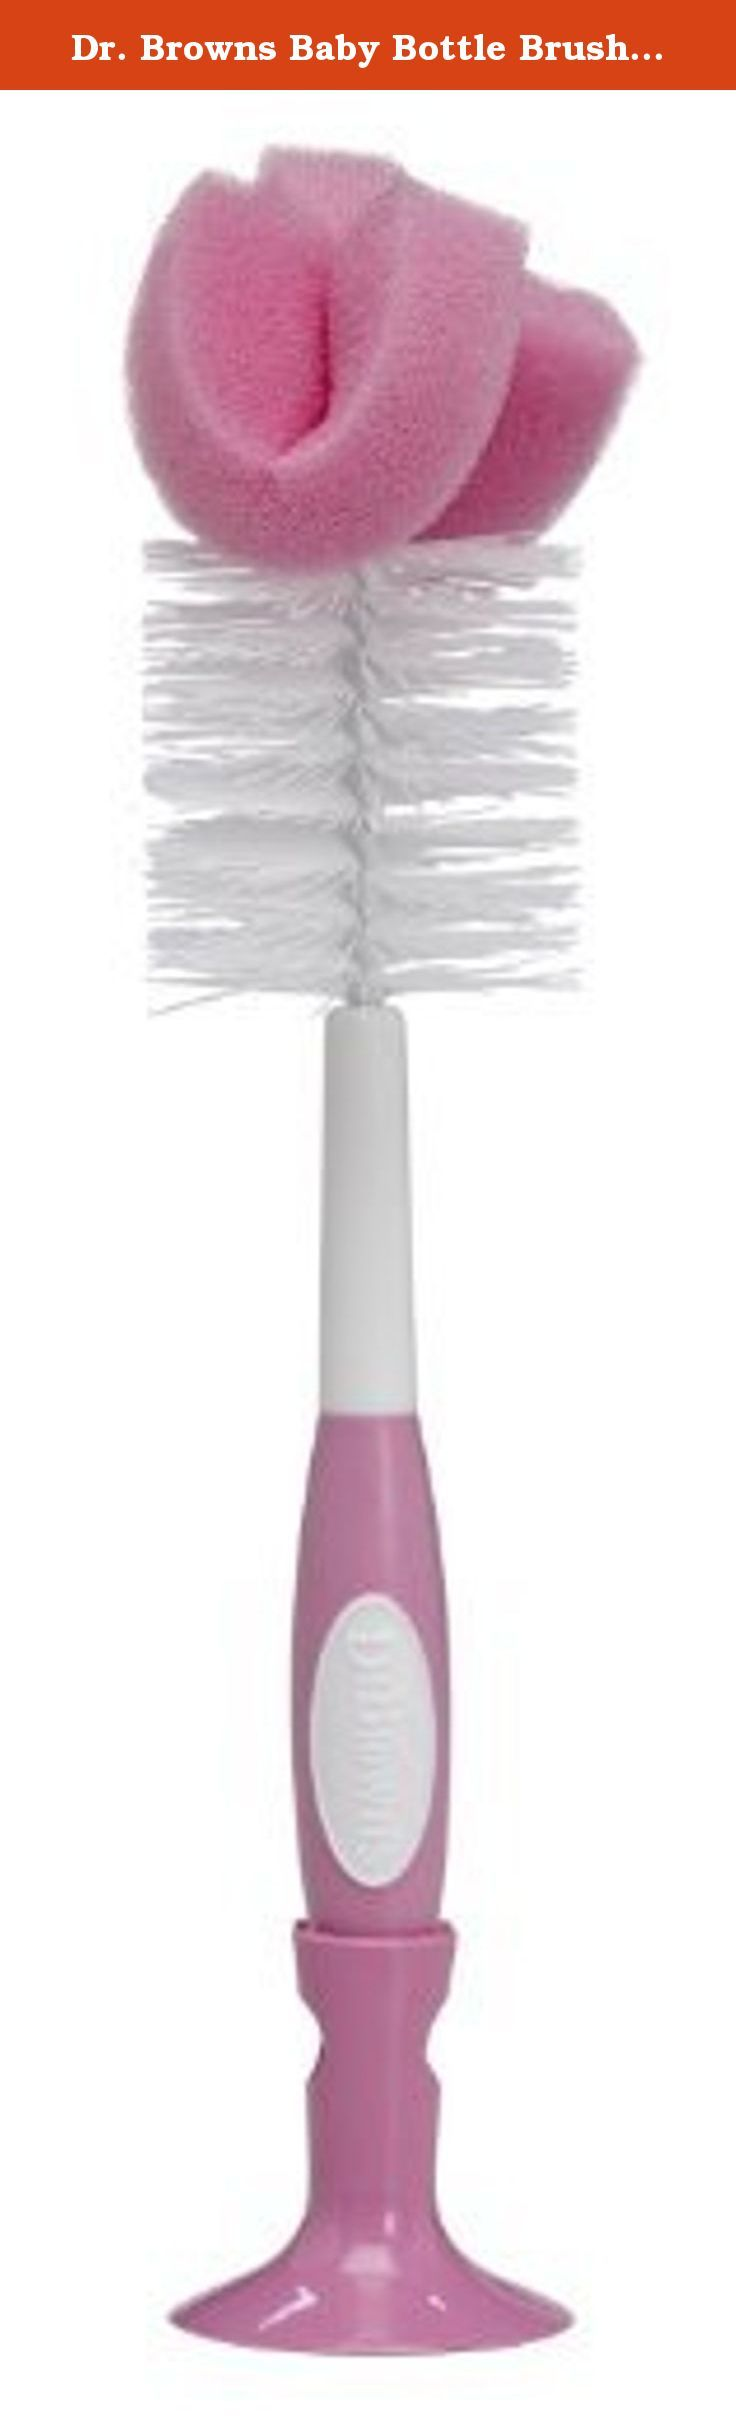 Dr. Browns Baby Bottle Brush - Pink - 2 Count. Bottle Brushes For use with all Dr. Browns baby bottles. Combination sponge and bristles for thorough cleaning of bottles Chevron channels at the base for cleaning nipples. Combination sponge and bristles for thorough cleaning Grooved no-slip handle for easy grip Storage clip to house brush near sink BPA Free.